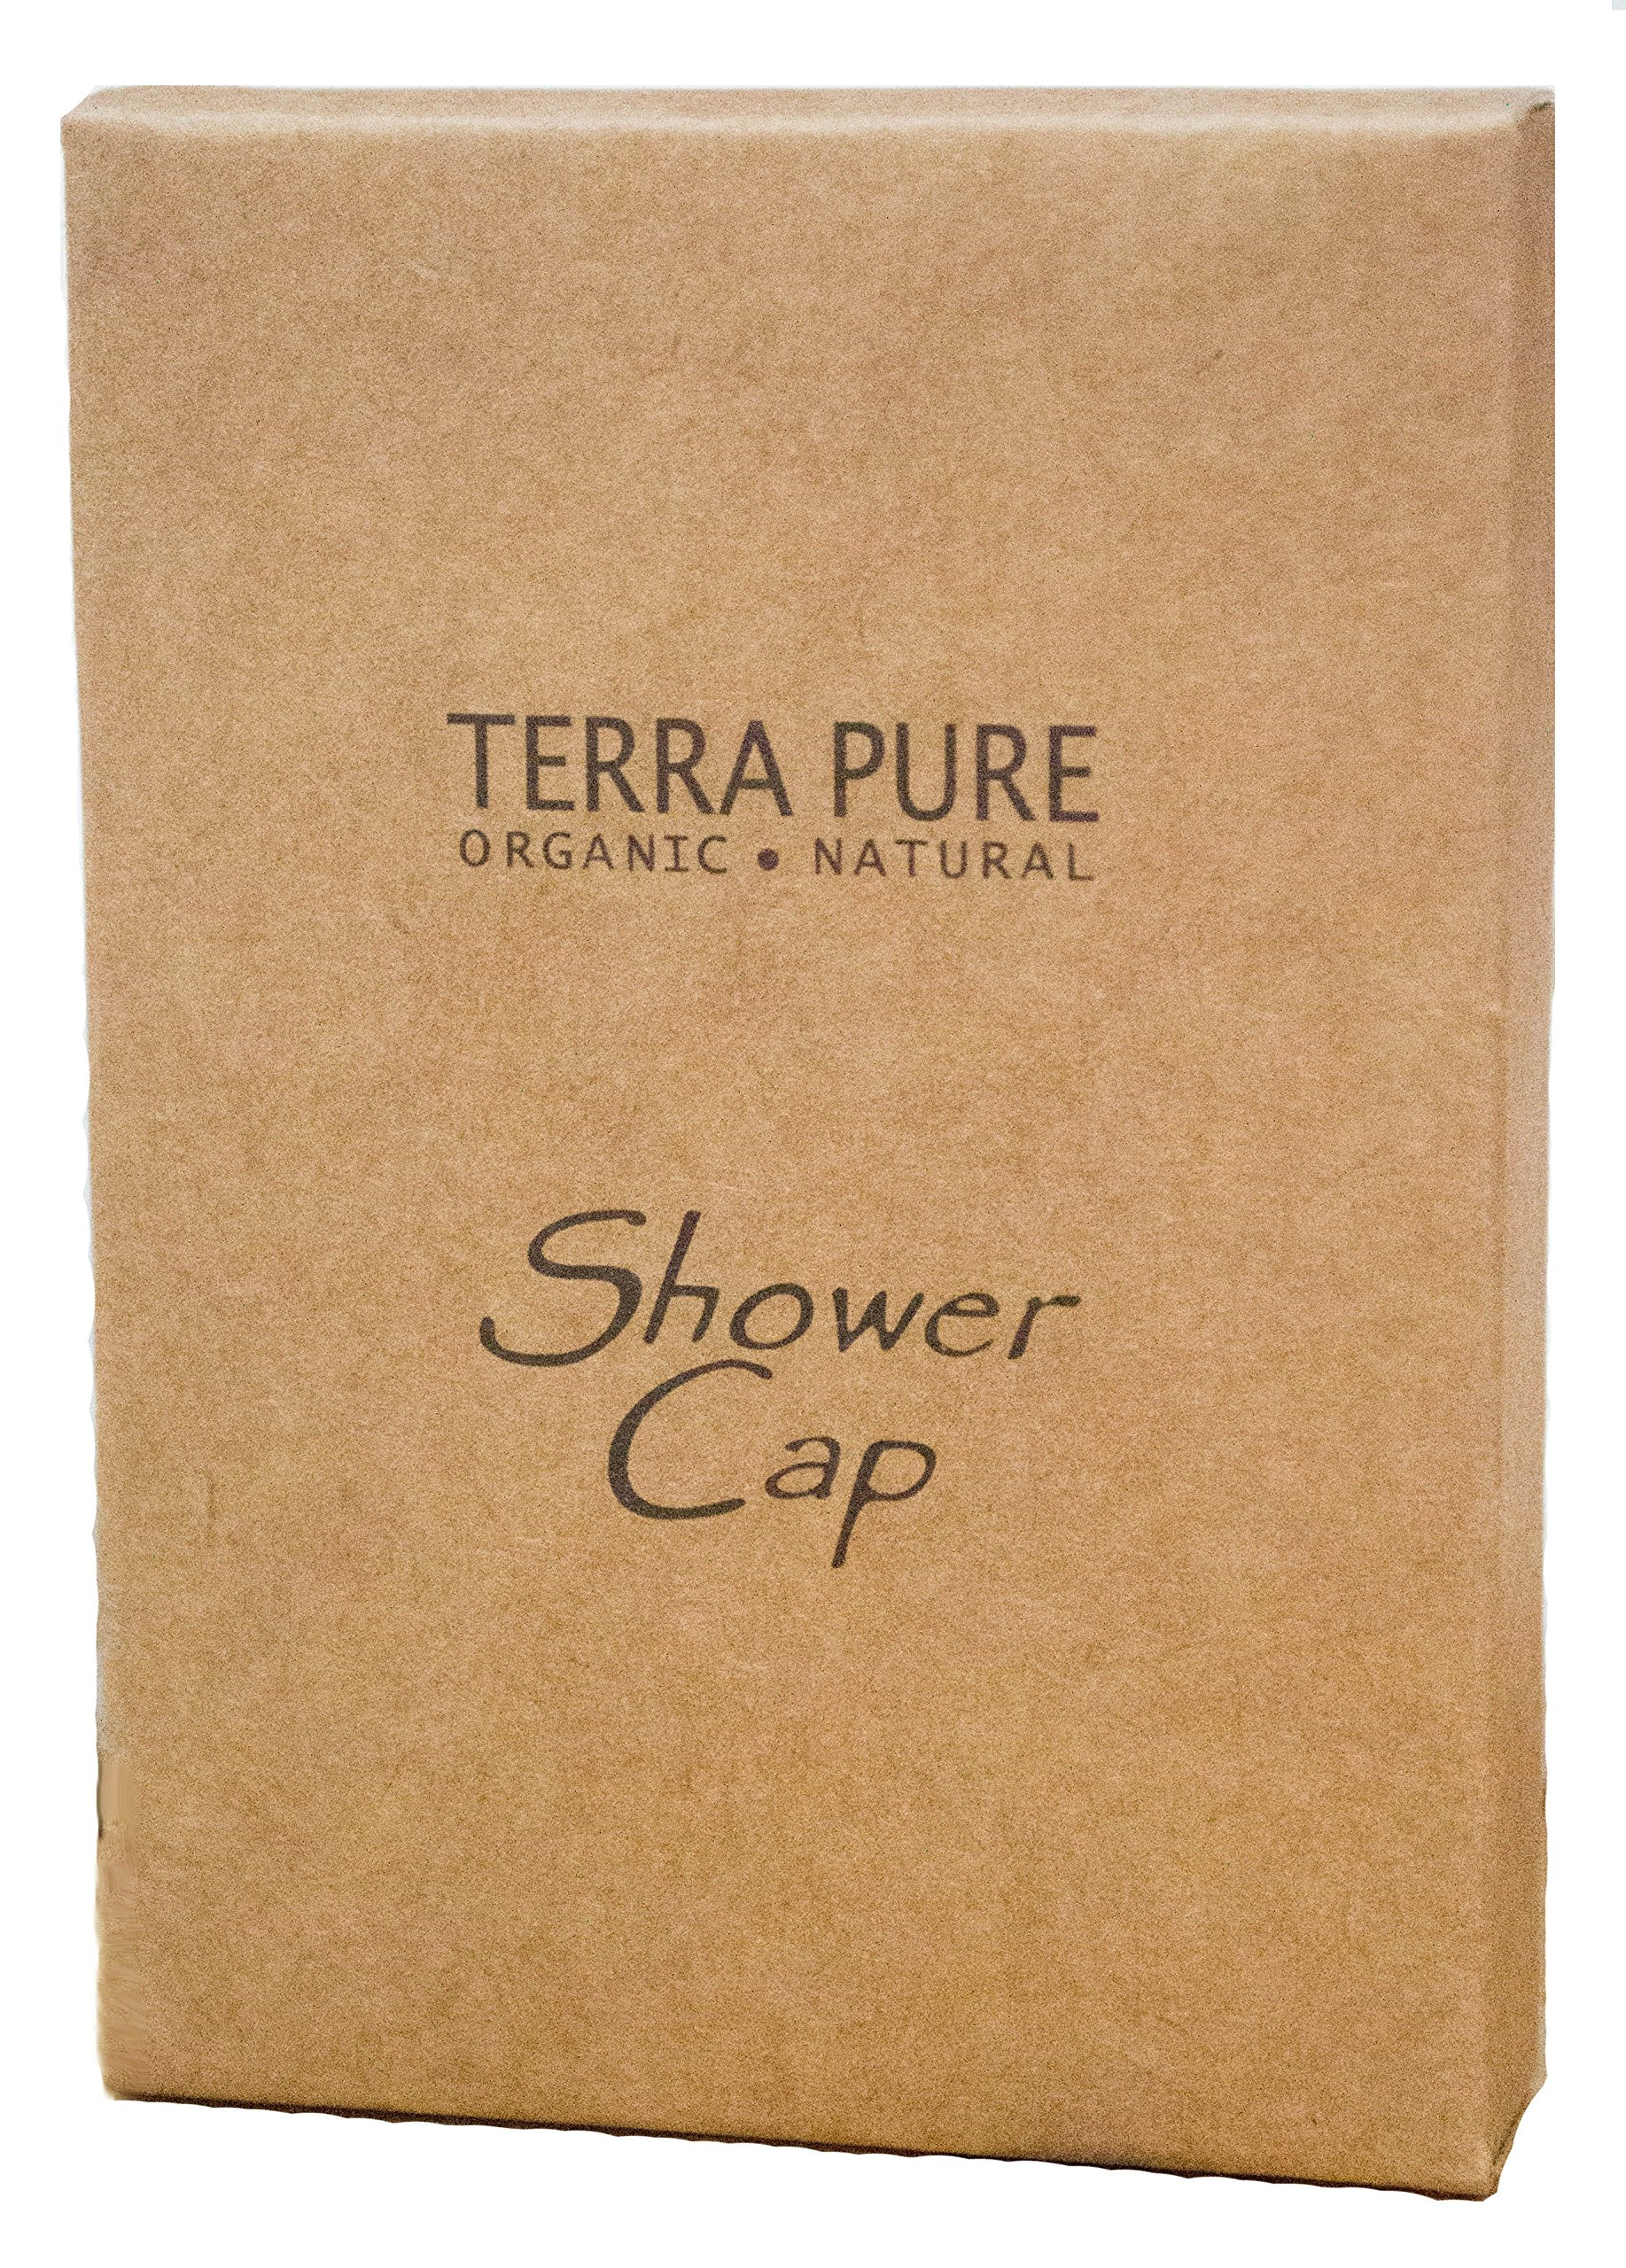 Terra Pure Green Tea Shower Cap Recycled Paper, Soy Ink Box (Case of 500) by Terra Pure